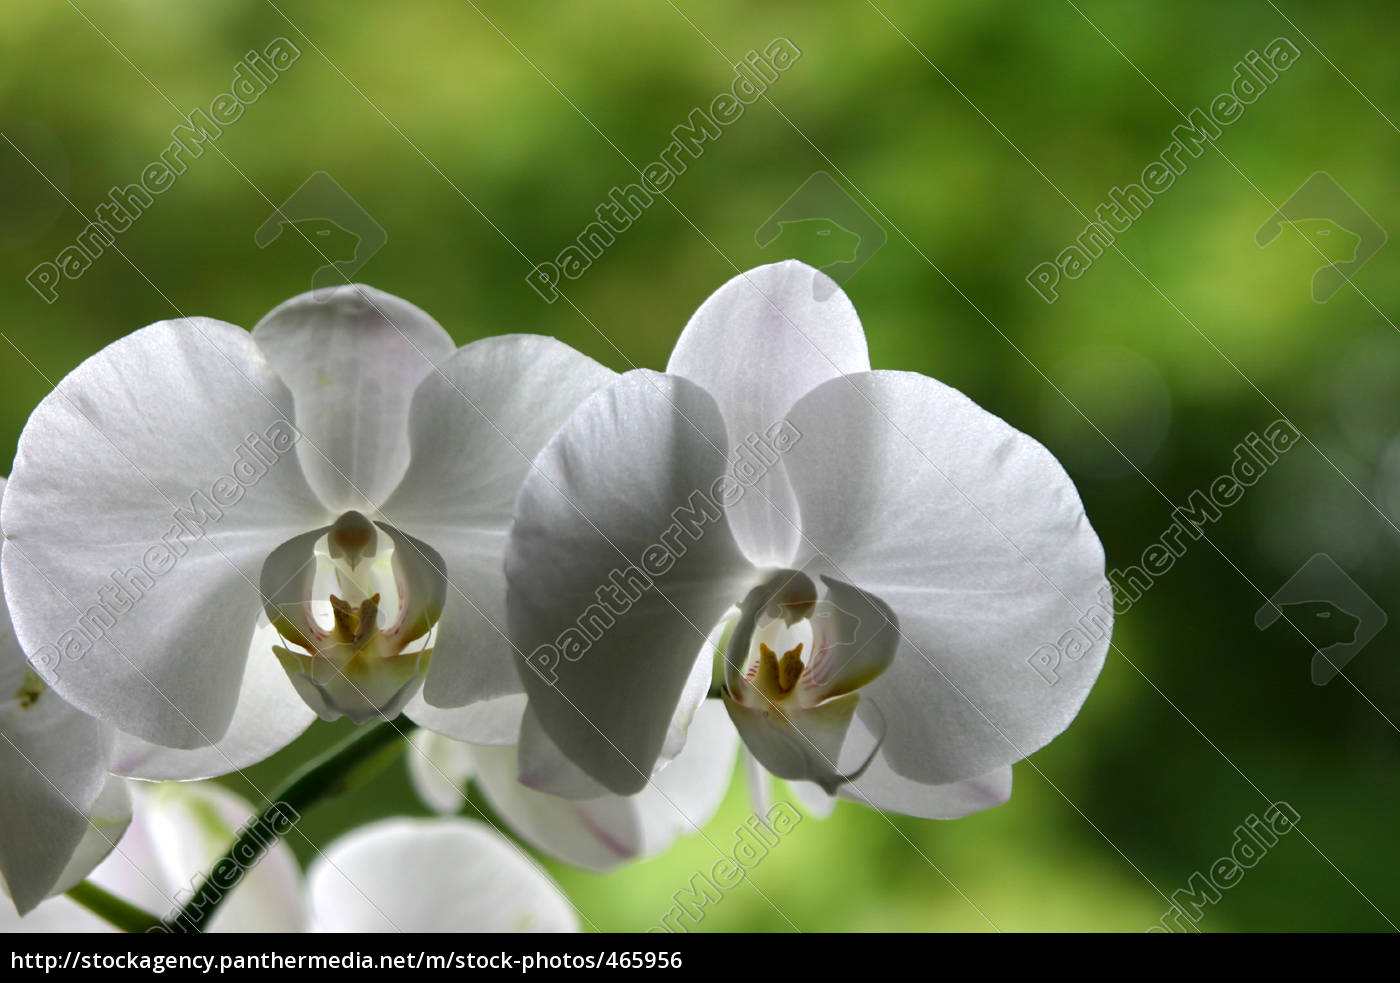 white, orchid - 465956